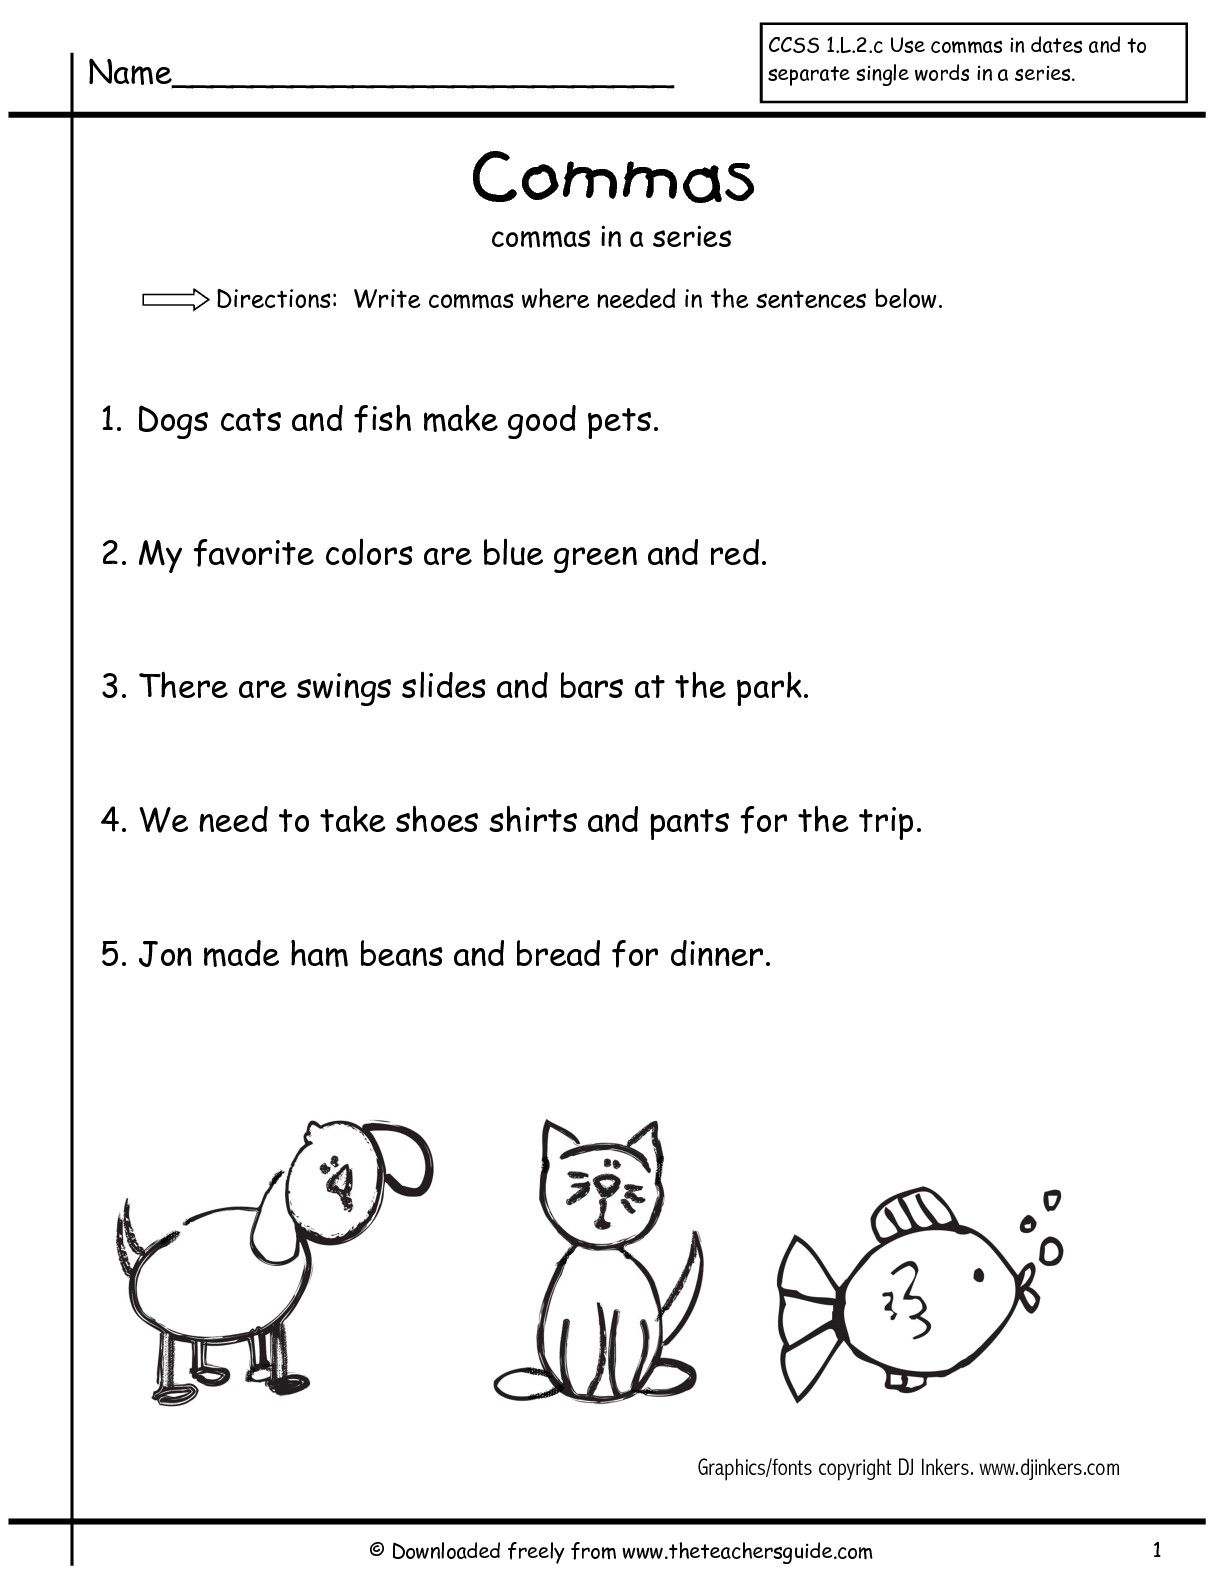 worksheet Comma Practice Worksheet grammar worksheets commas in a series first grade free comma worksheets